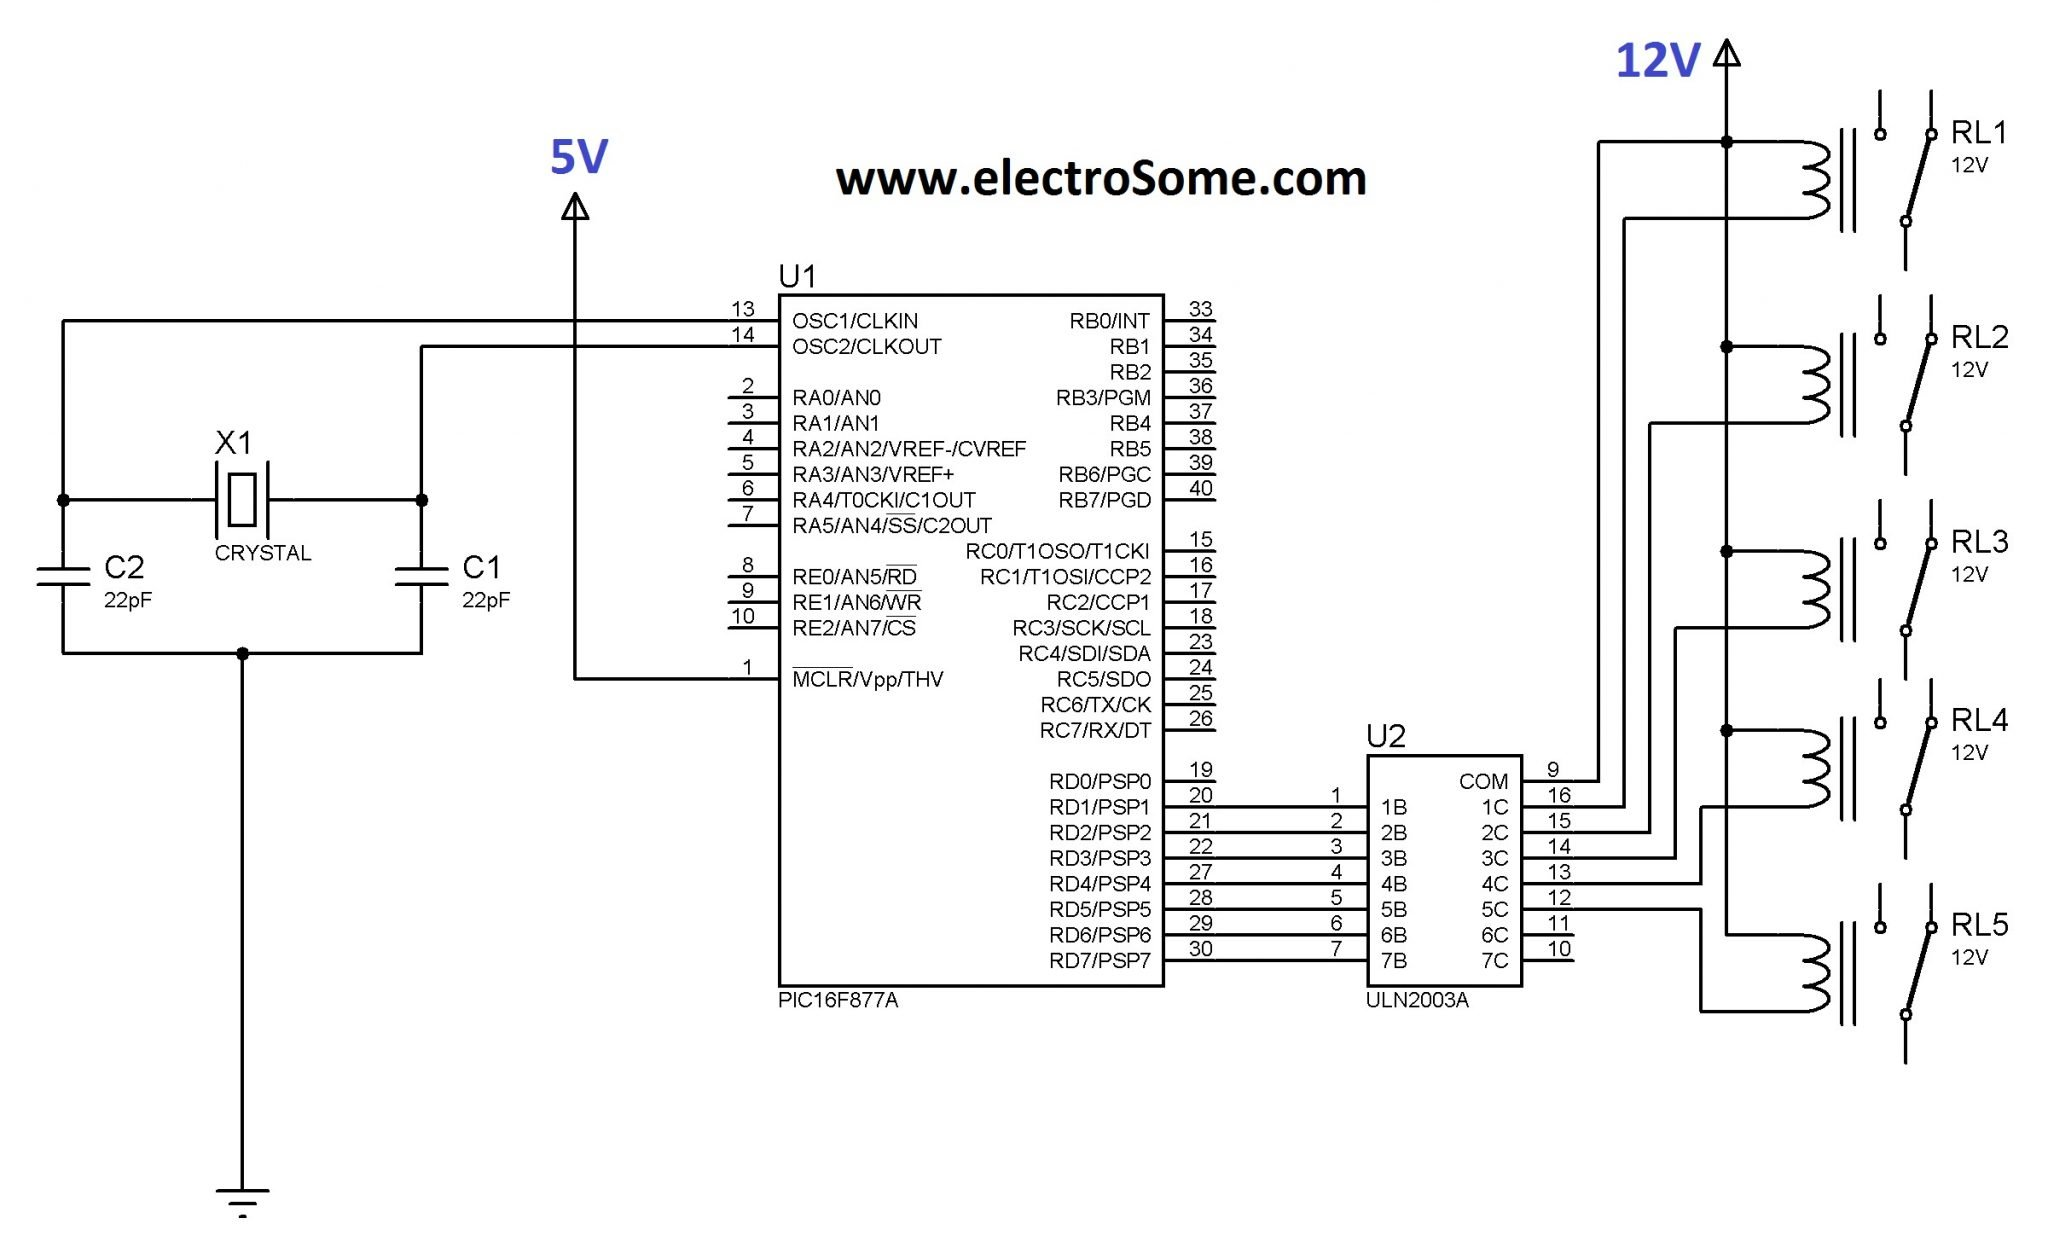 Interfacing Relay With Pic Microcontroller Mikroc Circuit Design Software Using Uln2003